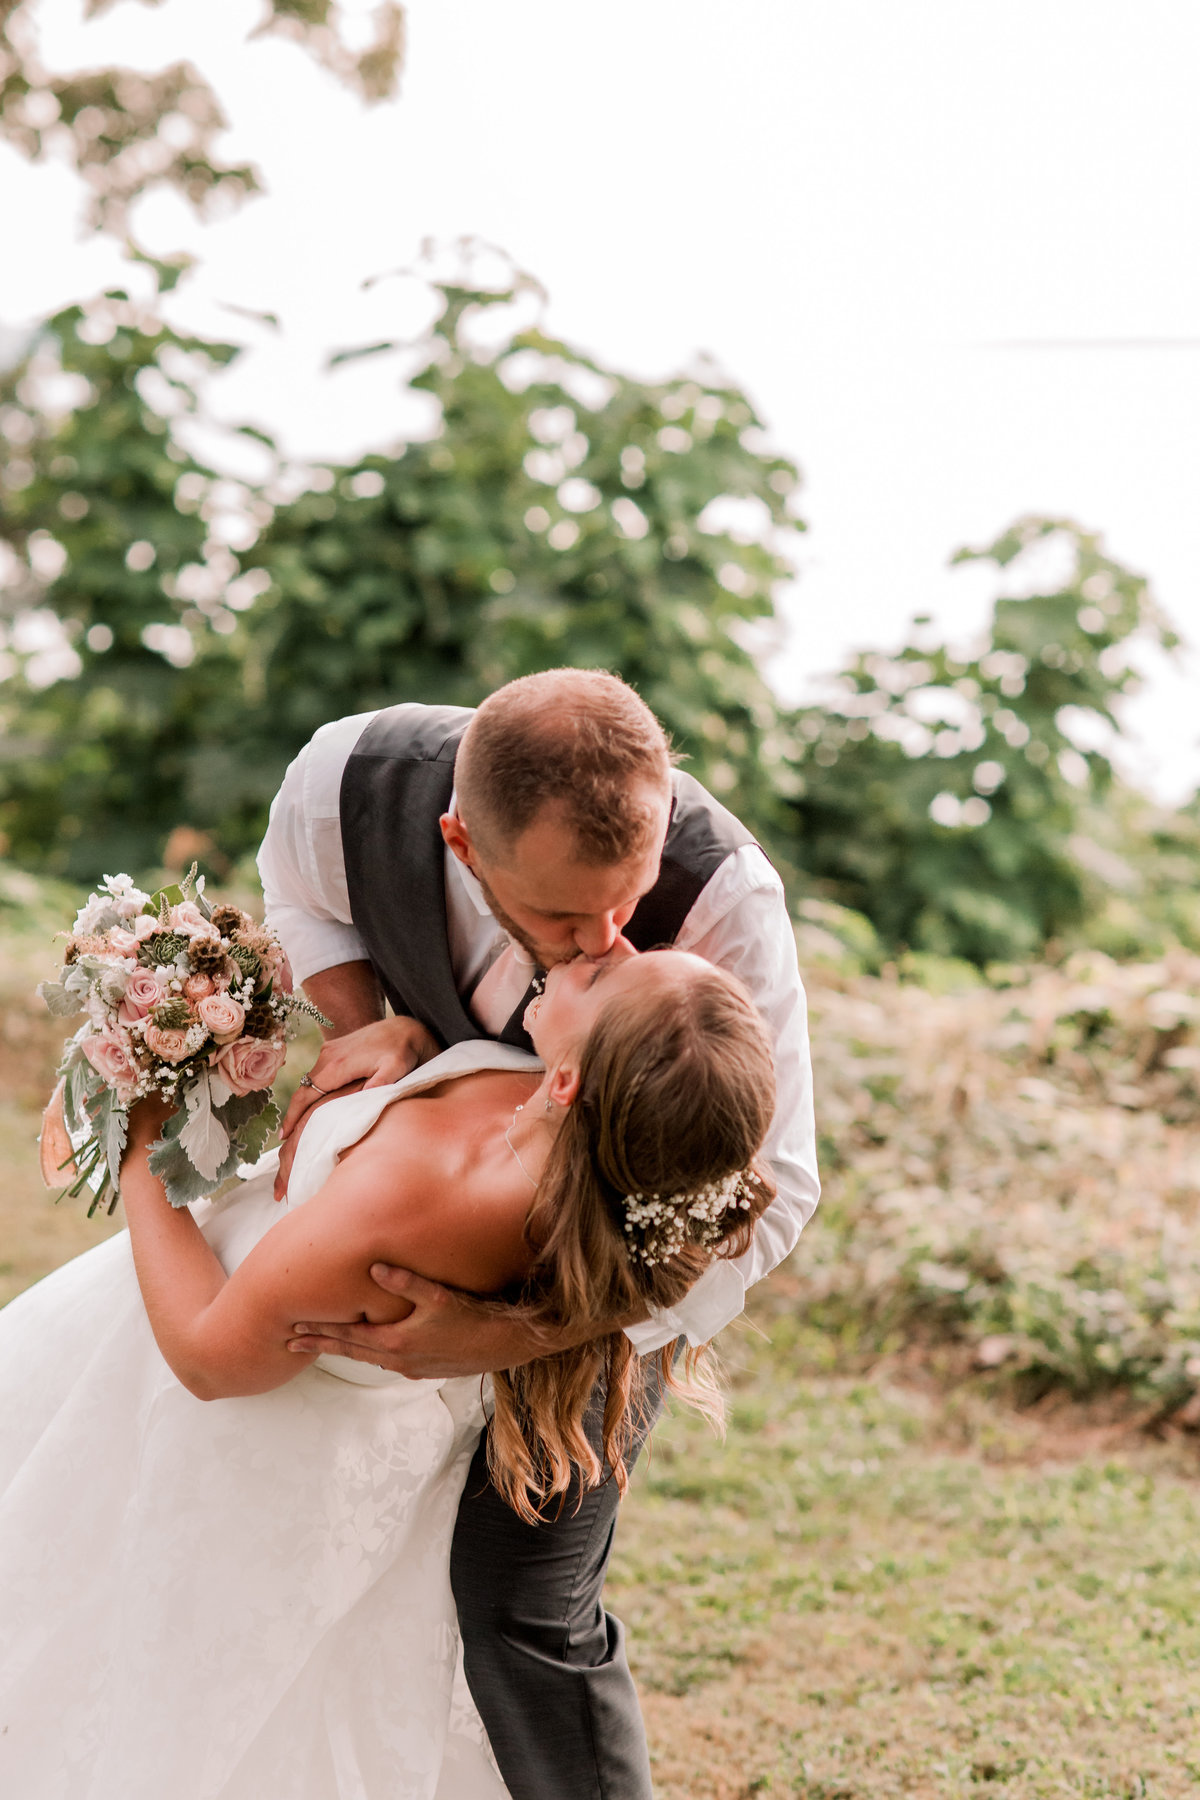 sharonelizabethphotography-surryvirginiawedding-rusticbackyardwedding-richmondvirginiaoutdoorwedding0128